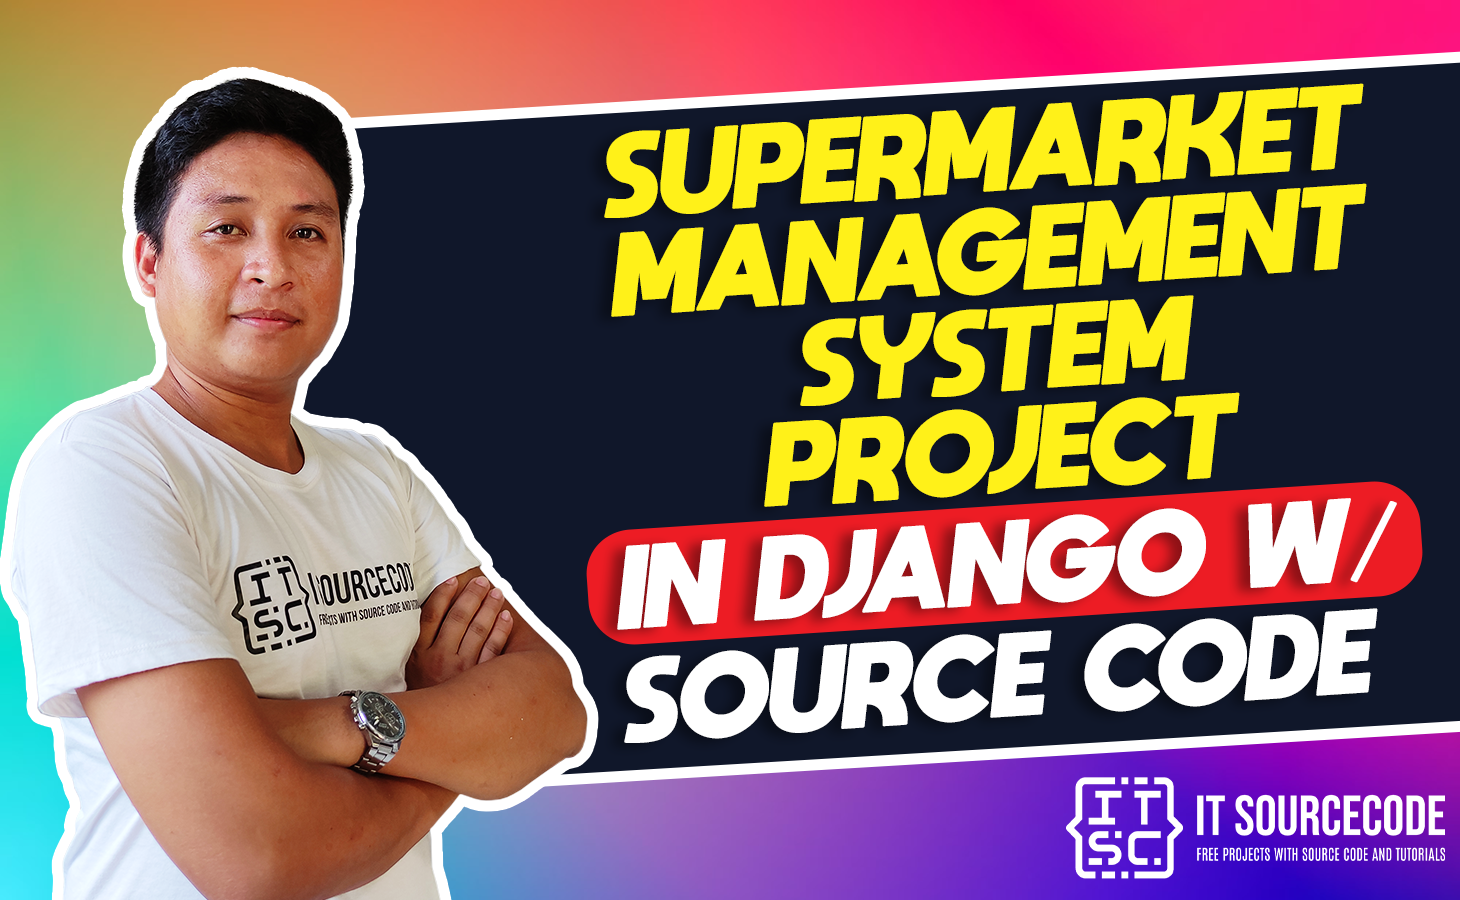 Supermarket Management System Project in Django with Source Code